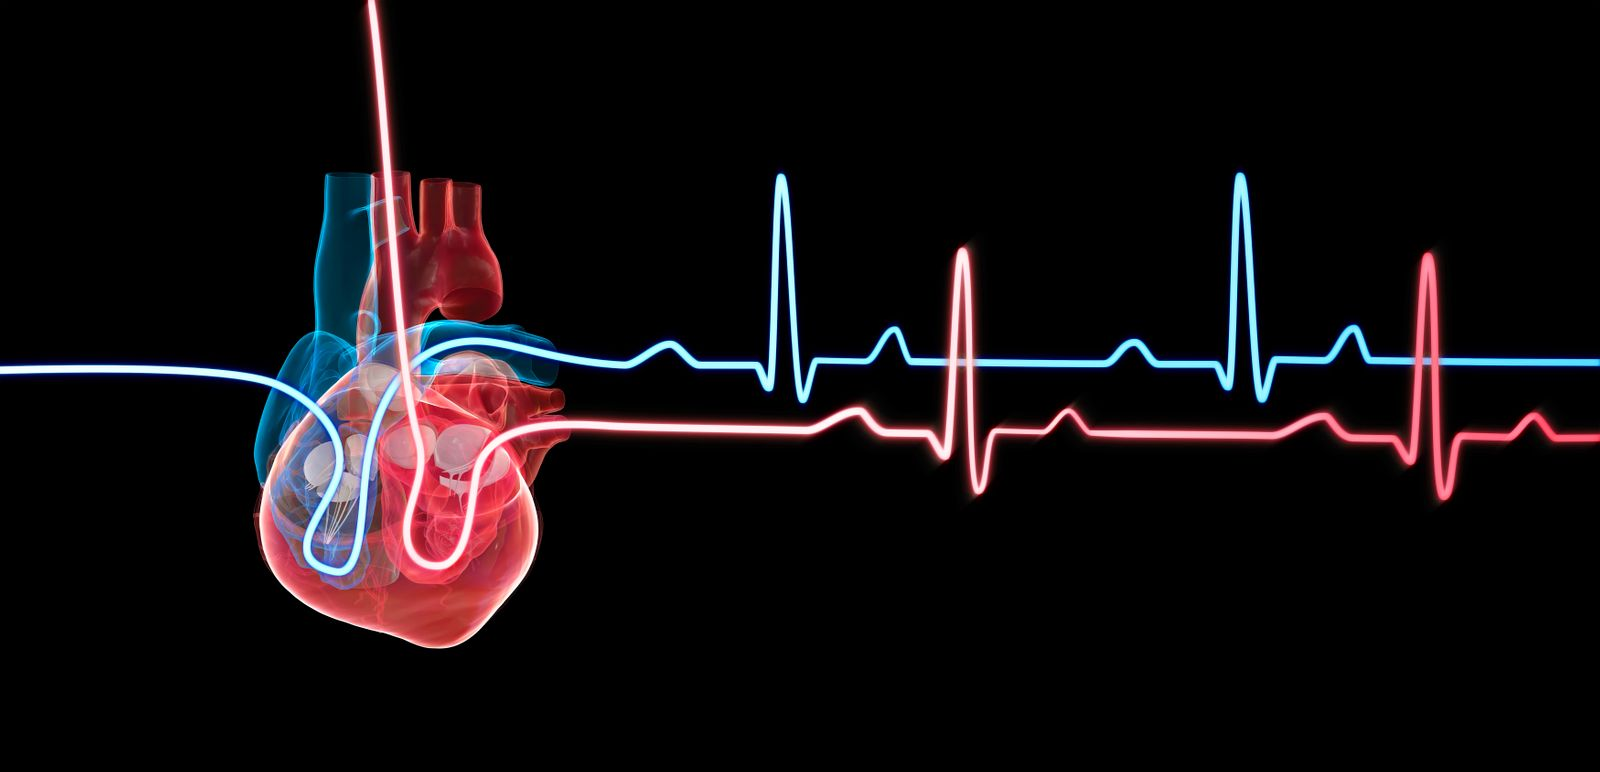 Human heart with a heartbeat traces, illustration